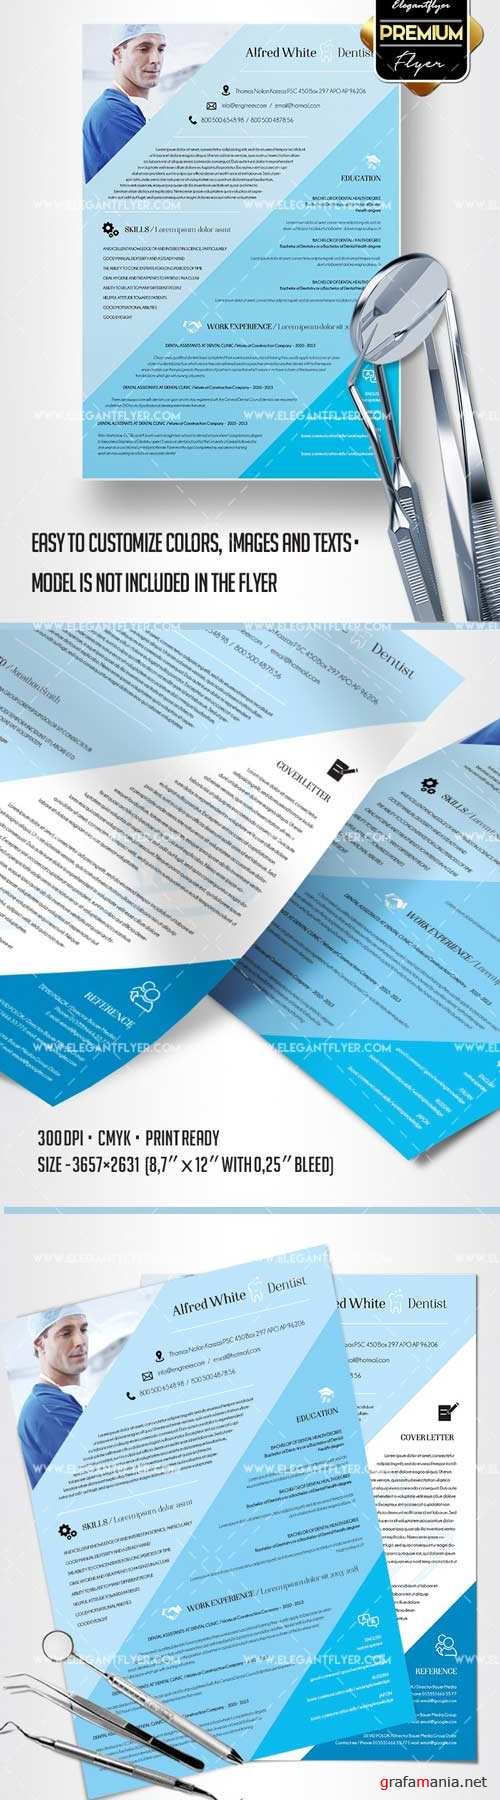 Premium CV and Cover Letter V3 2018 PSD Template